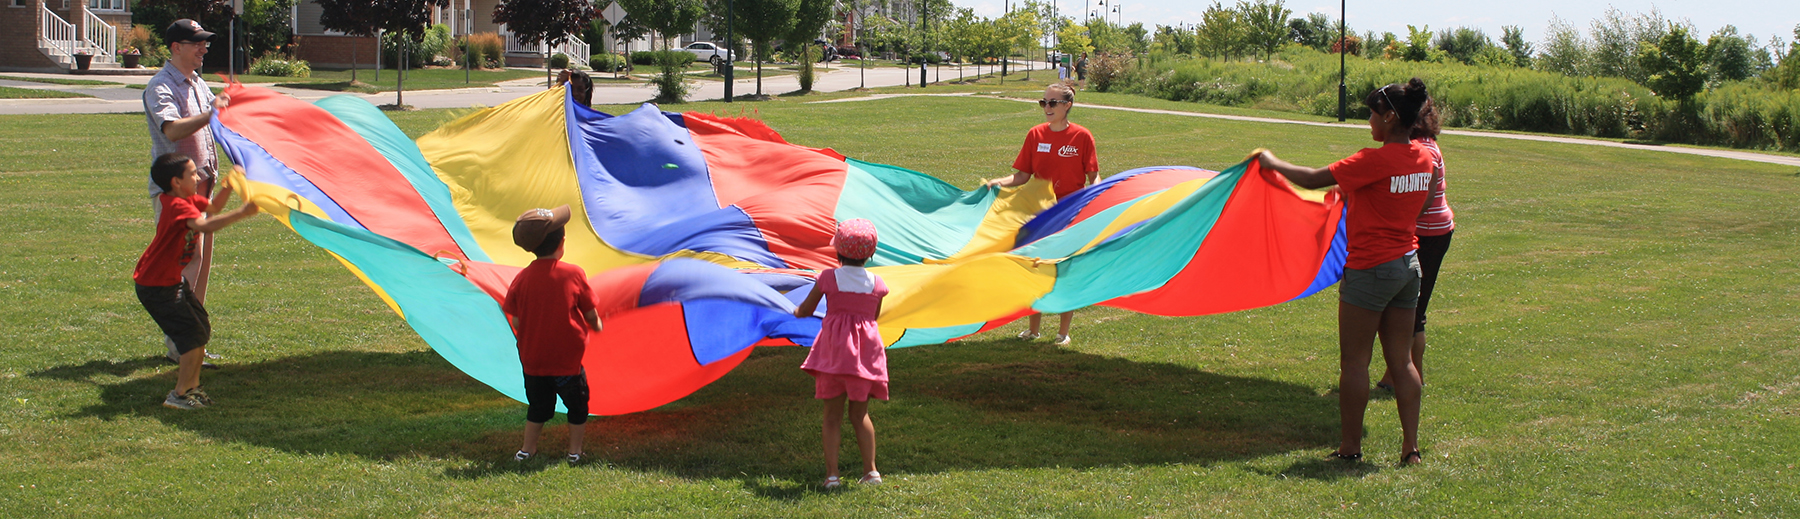 Children play with a large flag in a park